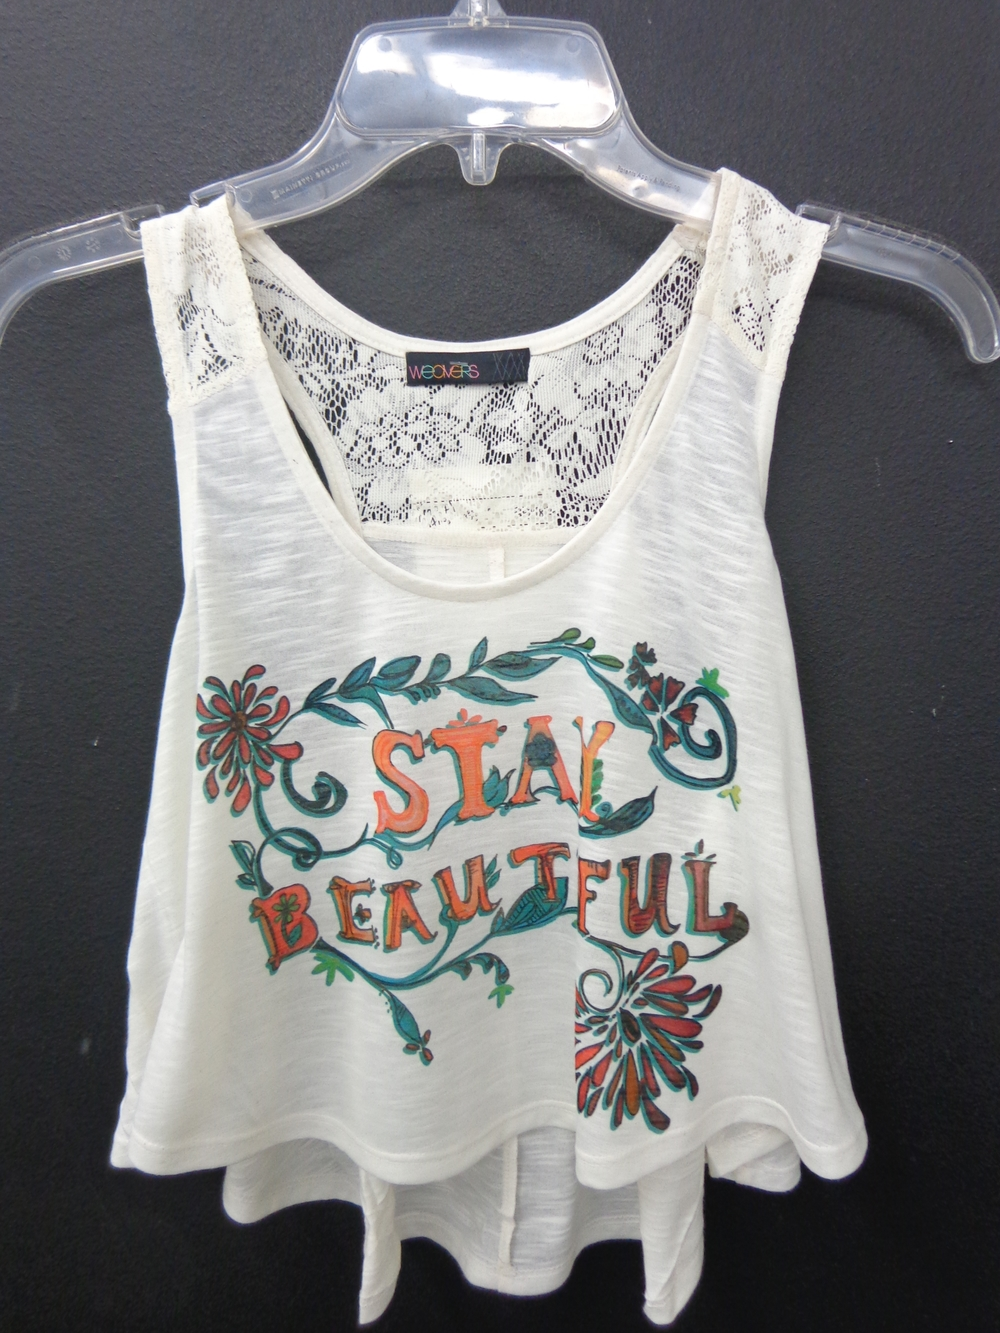 staybeautiful_tanktop.JPG